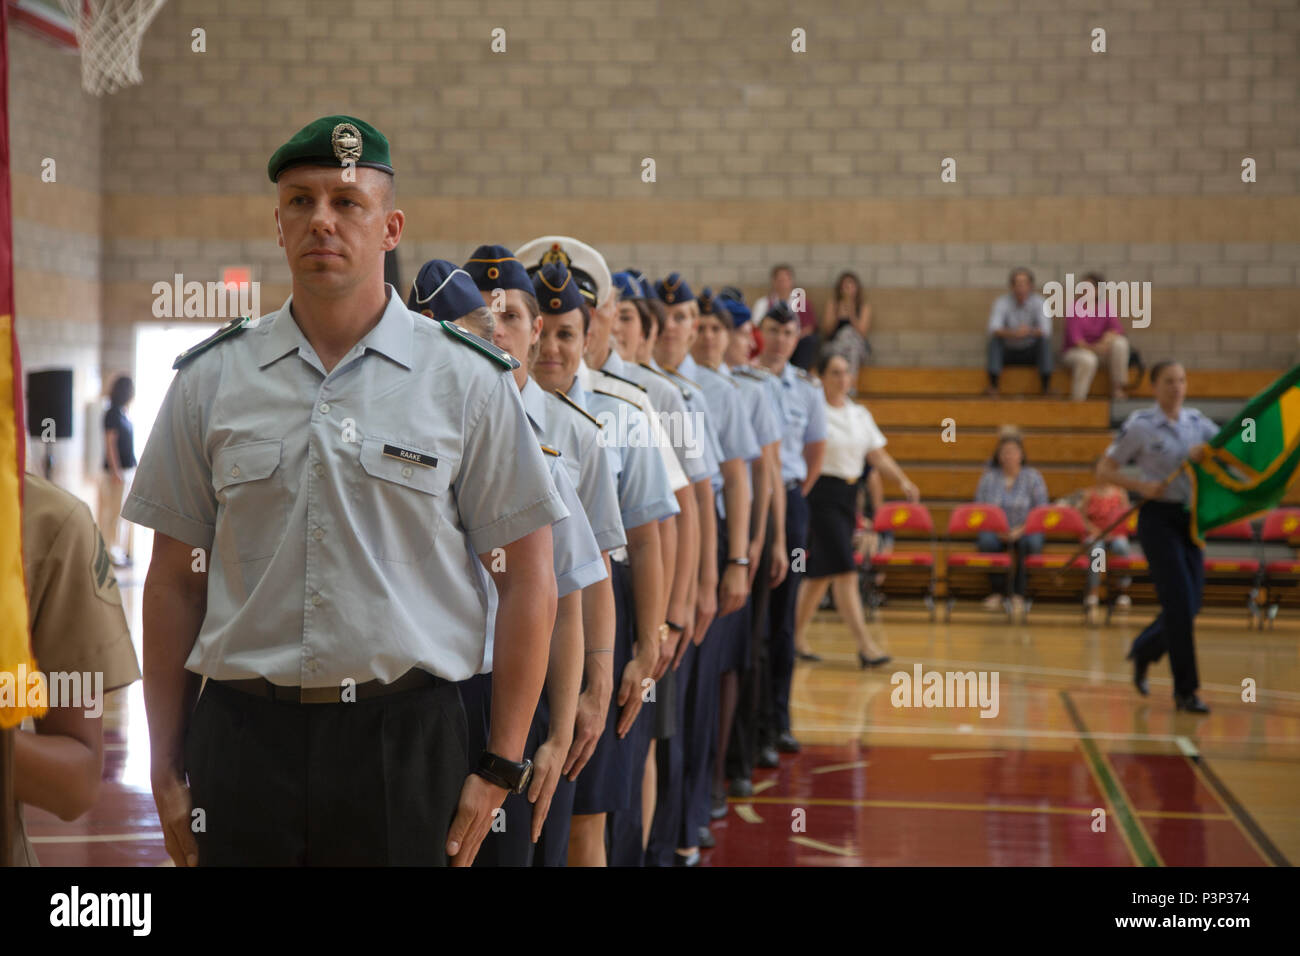 The team representing Germany in the World Military Women's Basketball Championship stand at attention during the 2016 Conseil International Du Sport Militaire (CISM) opening ceremony on Camp Pendleton, Calif., July 25, 2016. CISM championships are hosted around the world and provide an avenue for the United States to project the positive image with valuable military-to-military engagement through sports. (U.S. Marine Corps photo by Cpl. Tyler S. Dietrich) - Stock Image